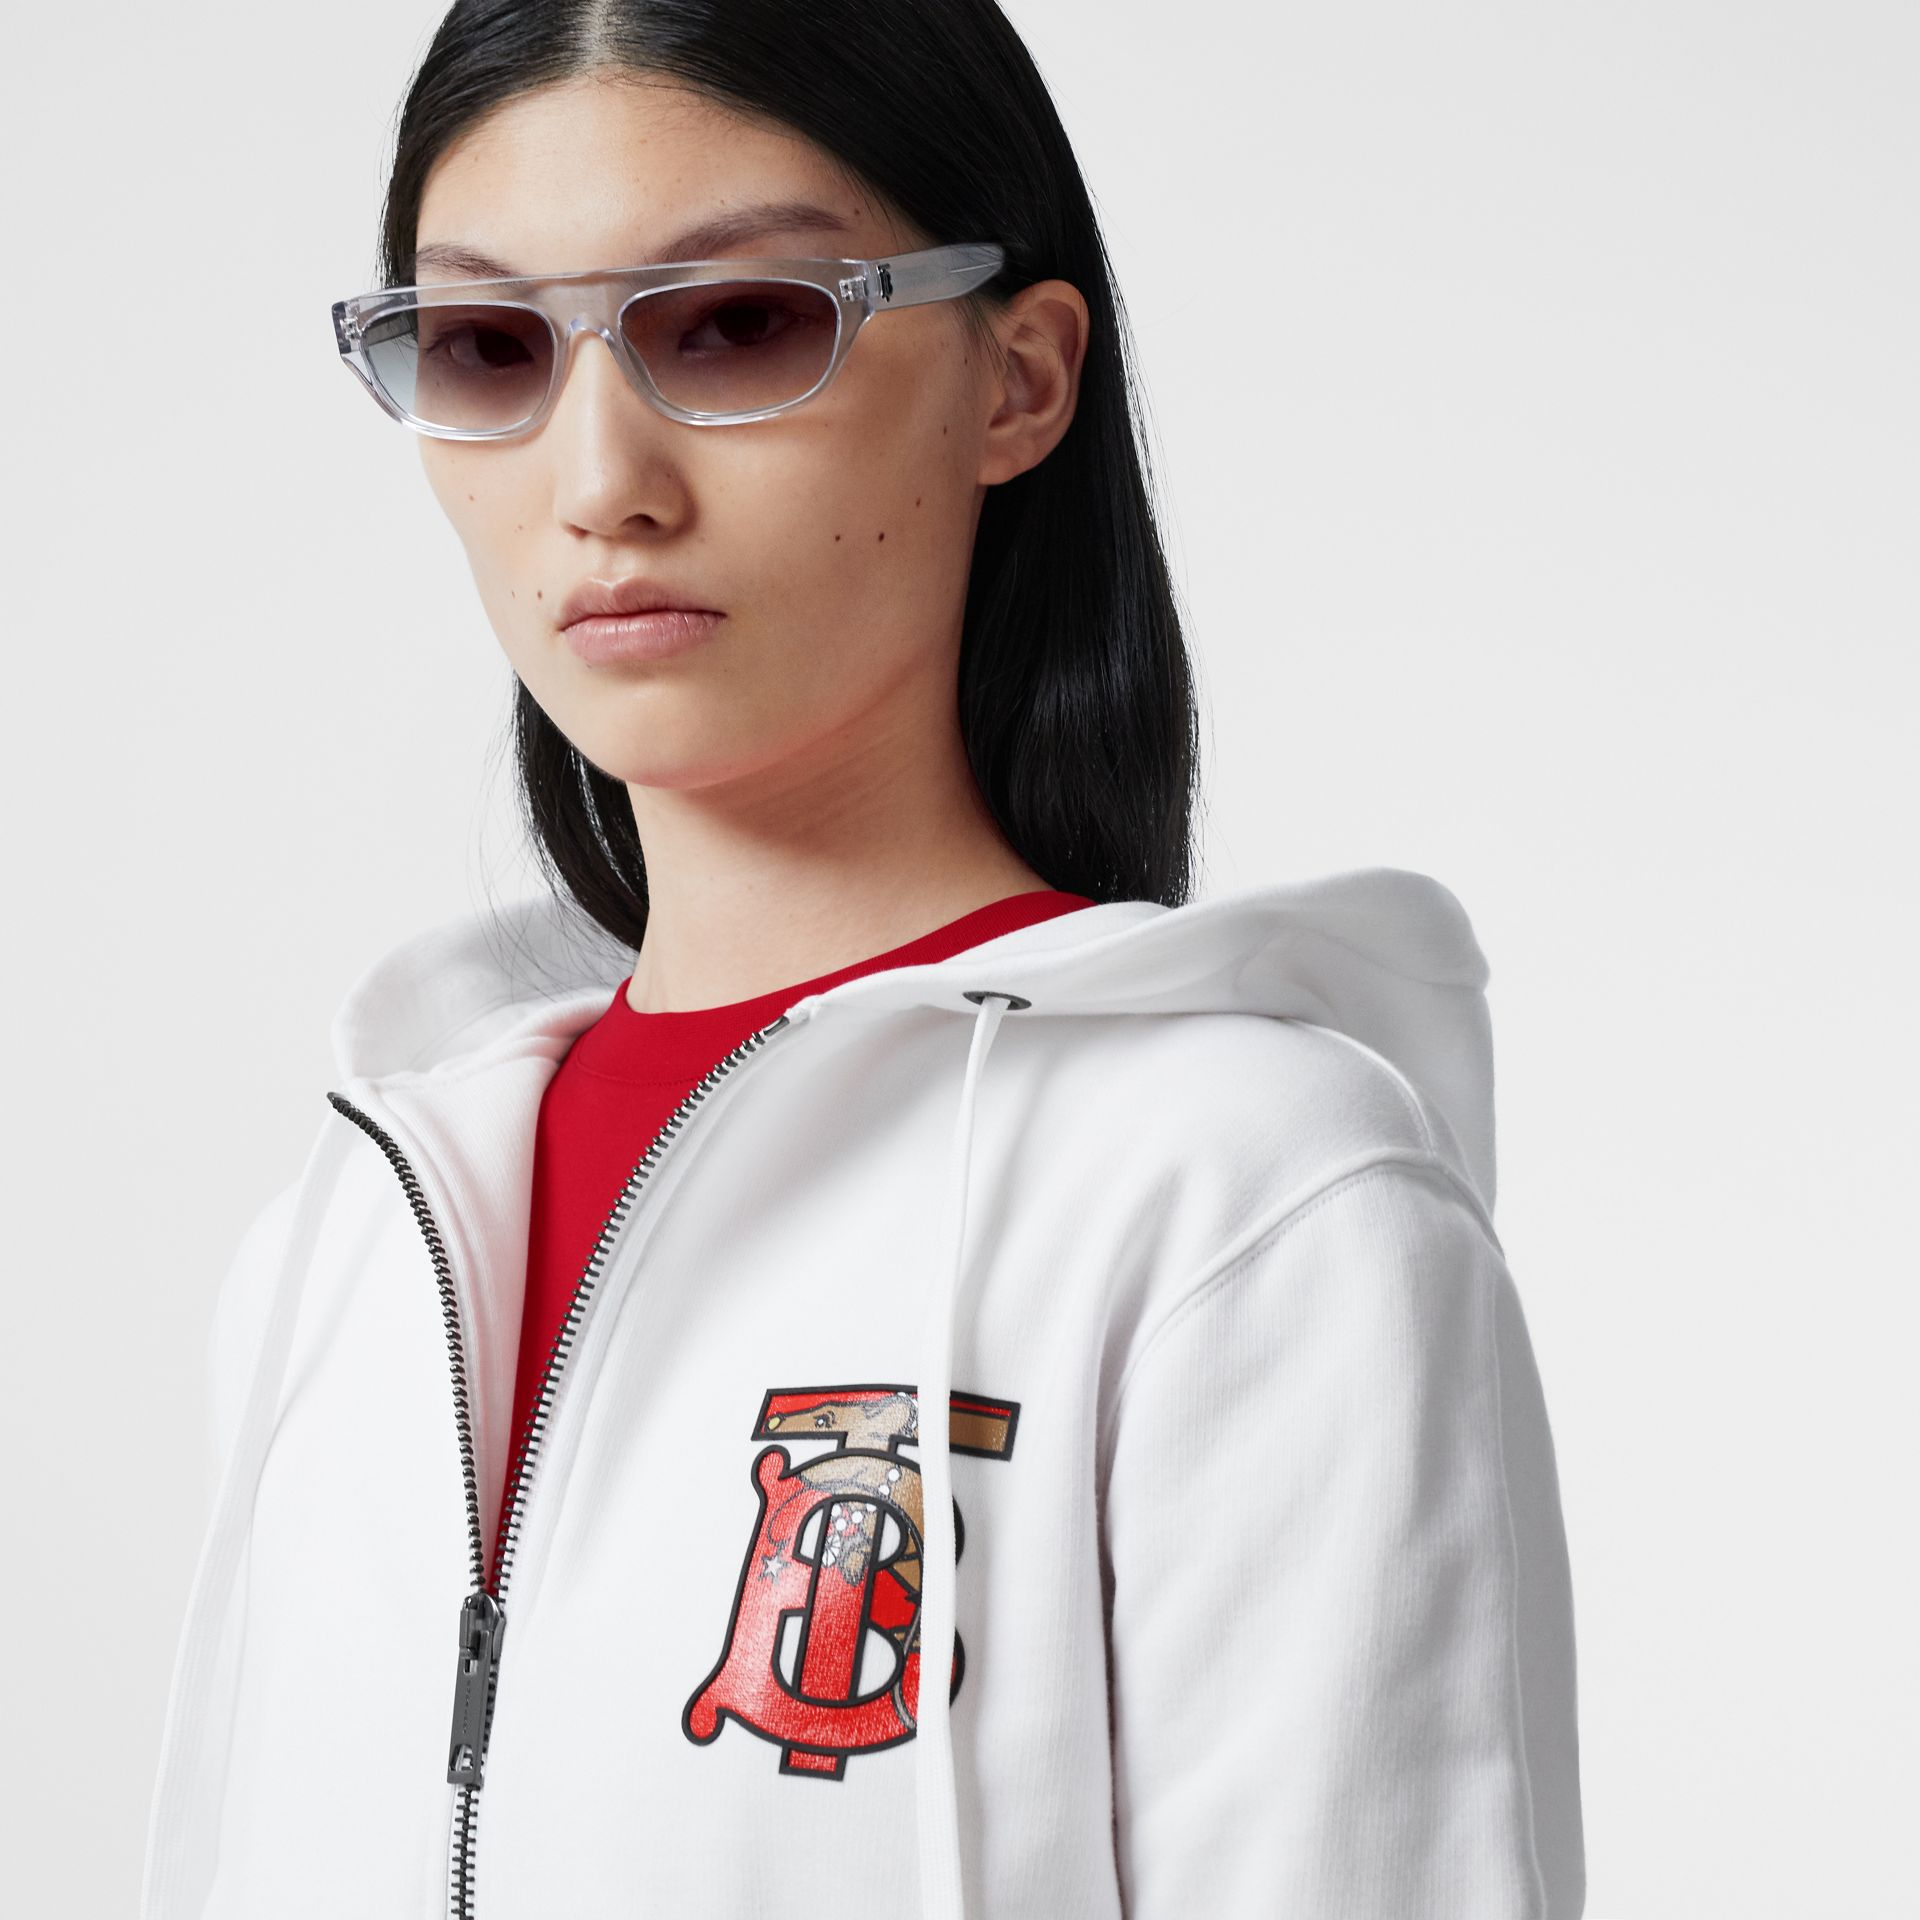 Monogram Motif Cotton Oversized Hooded Top in White - Women | Burberry Canada - gallery image 1